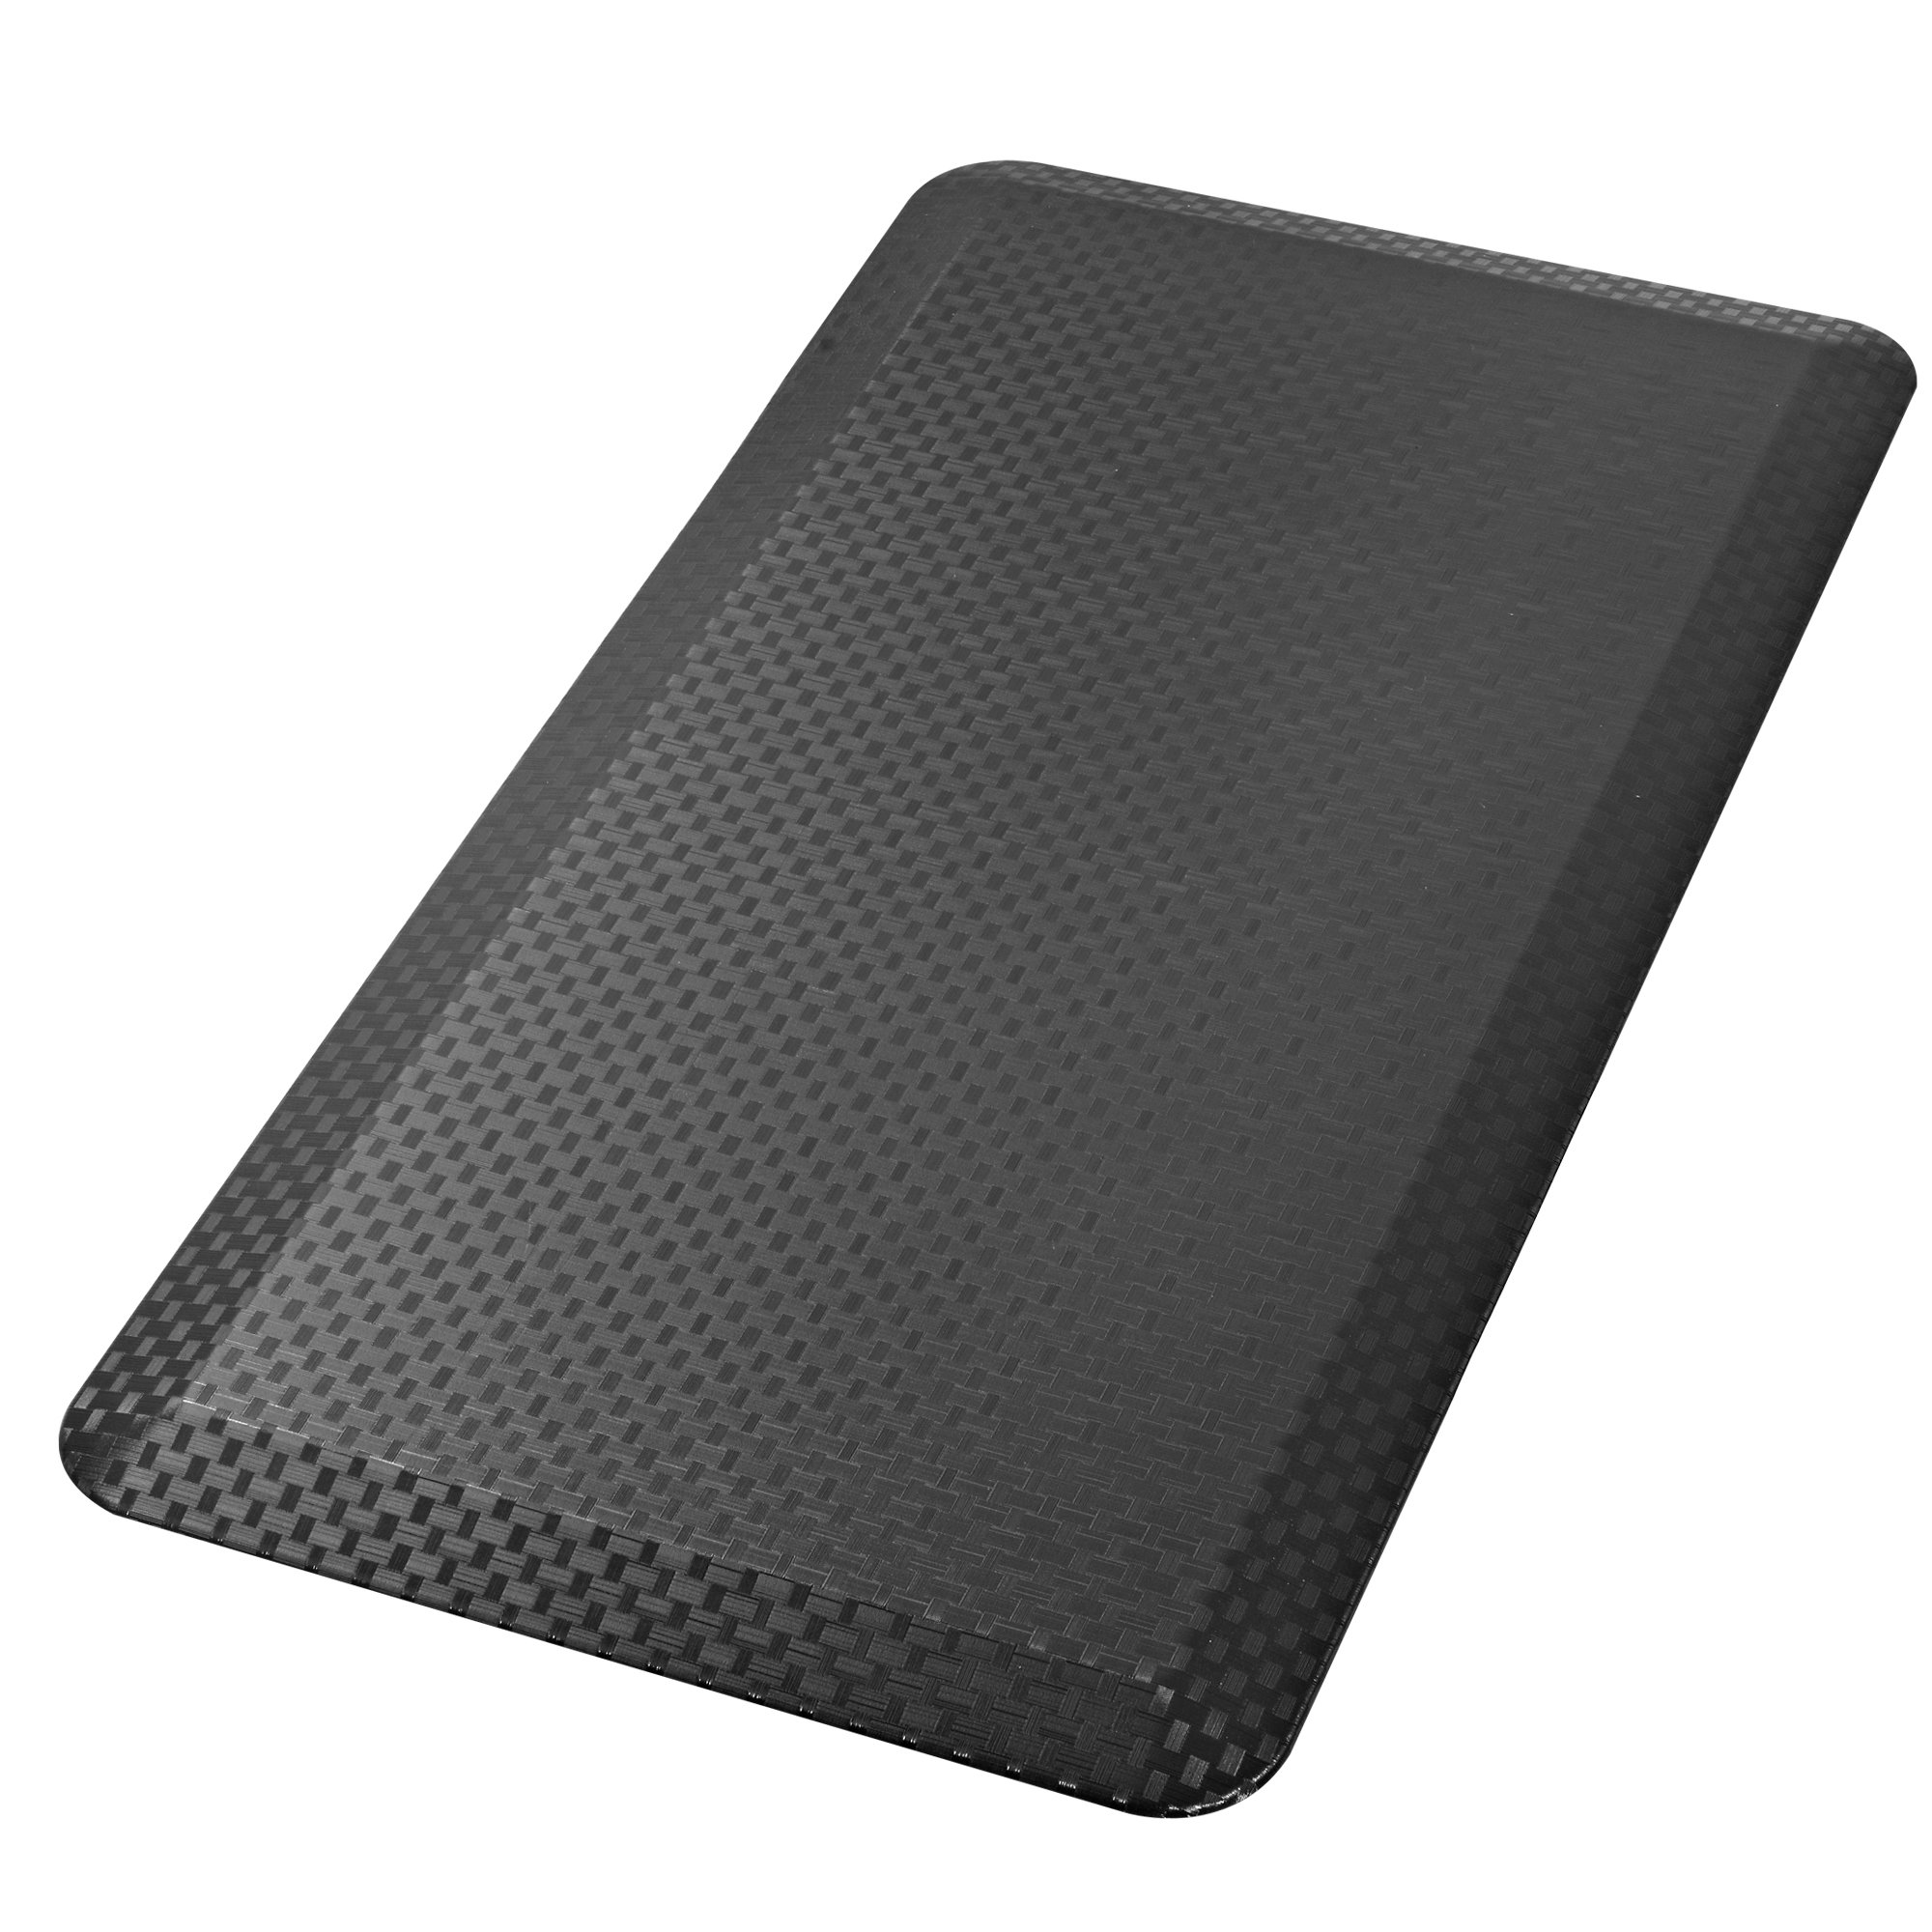 Cook N Home Anti-Fatigue Comfort Mat, 39 x 20'', Faux Woven, Black, 3/4'' Thickness